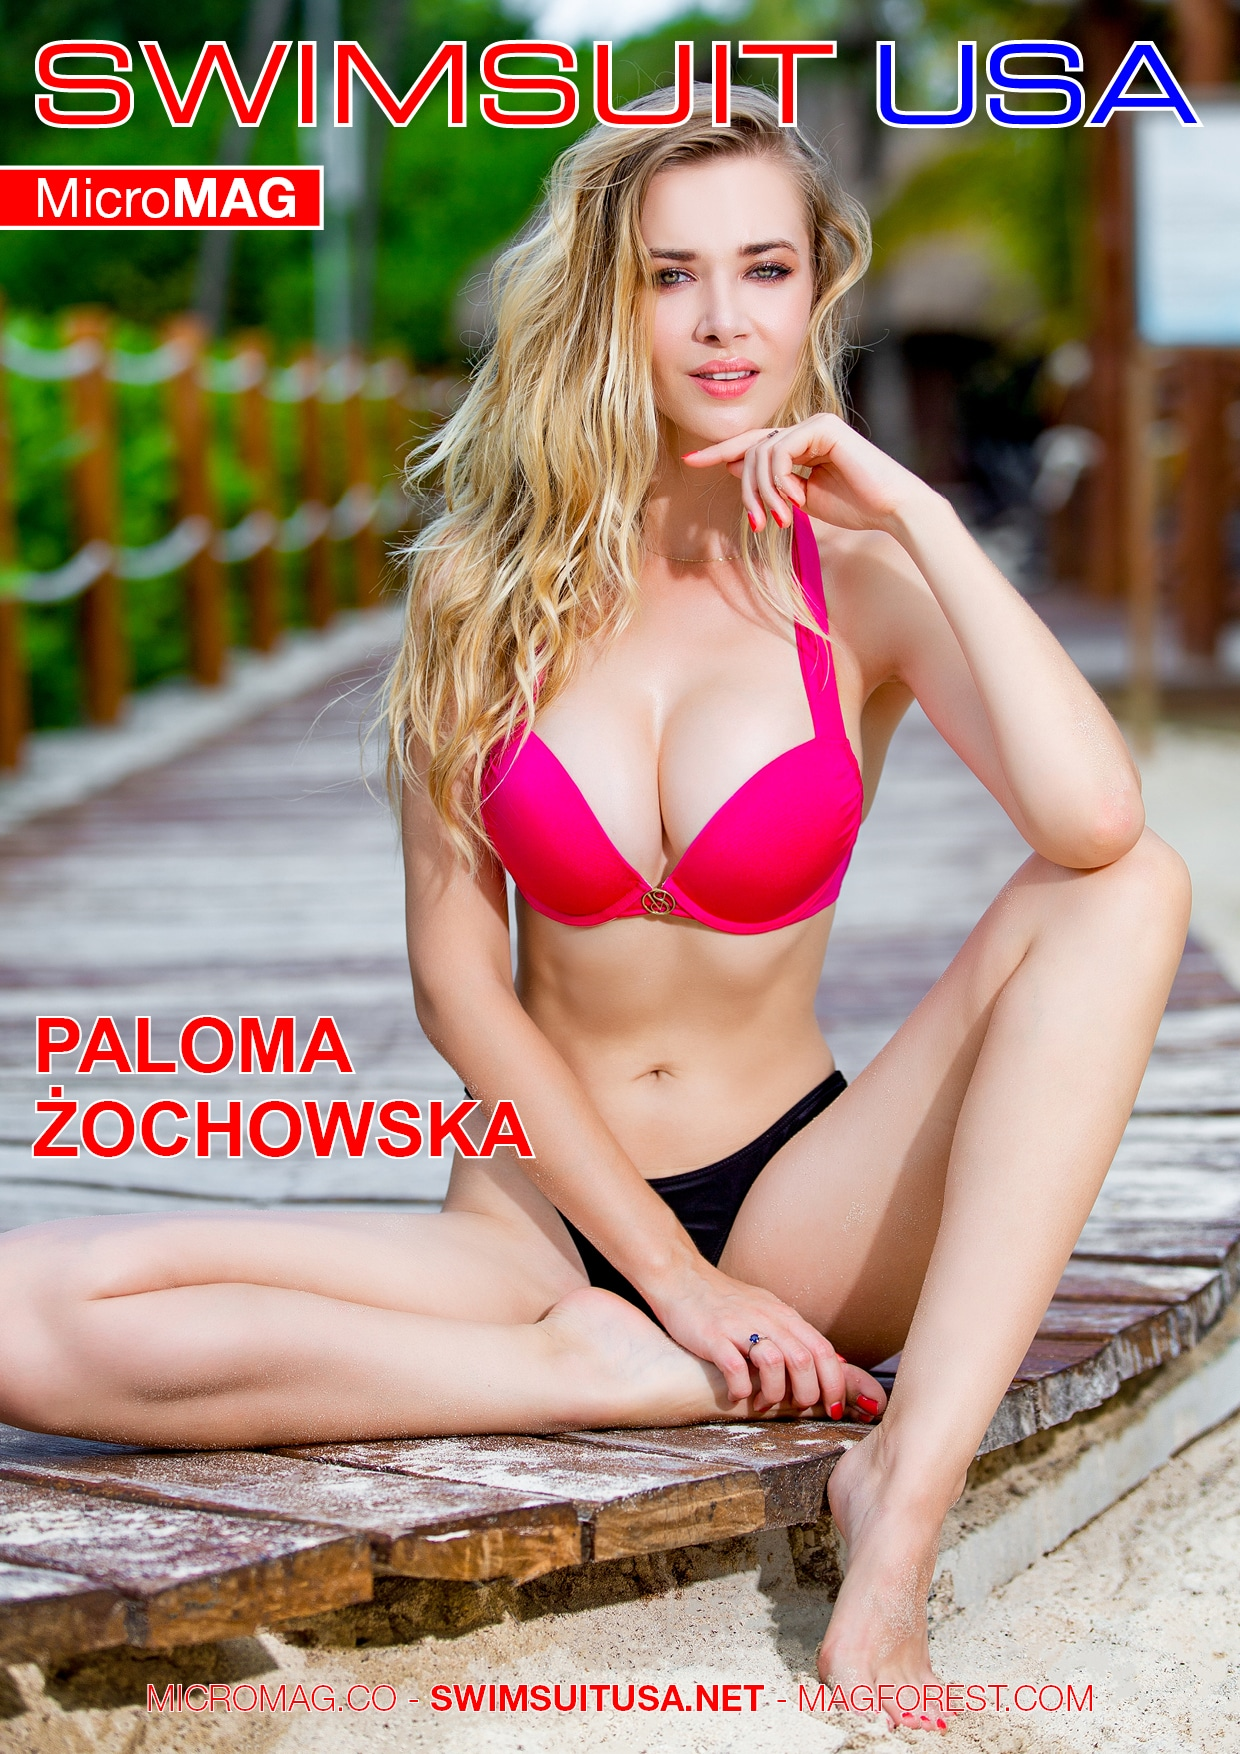 Swimsuit USA MicroMAG - Paloma Zochowska - Issue 2 2